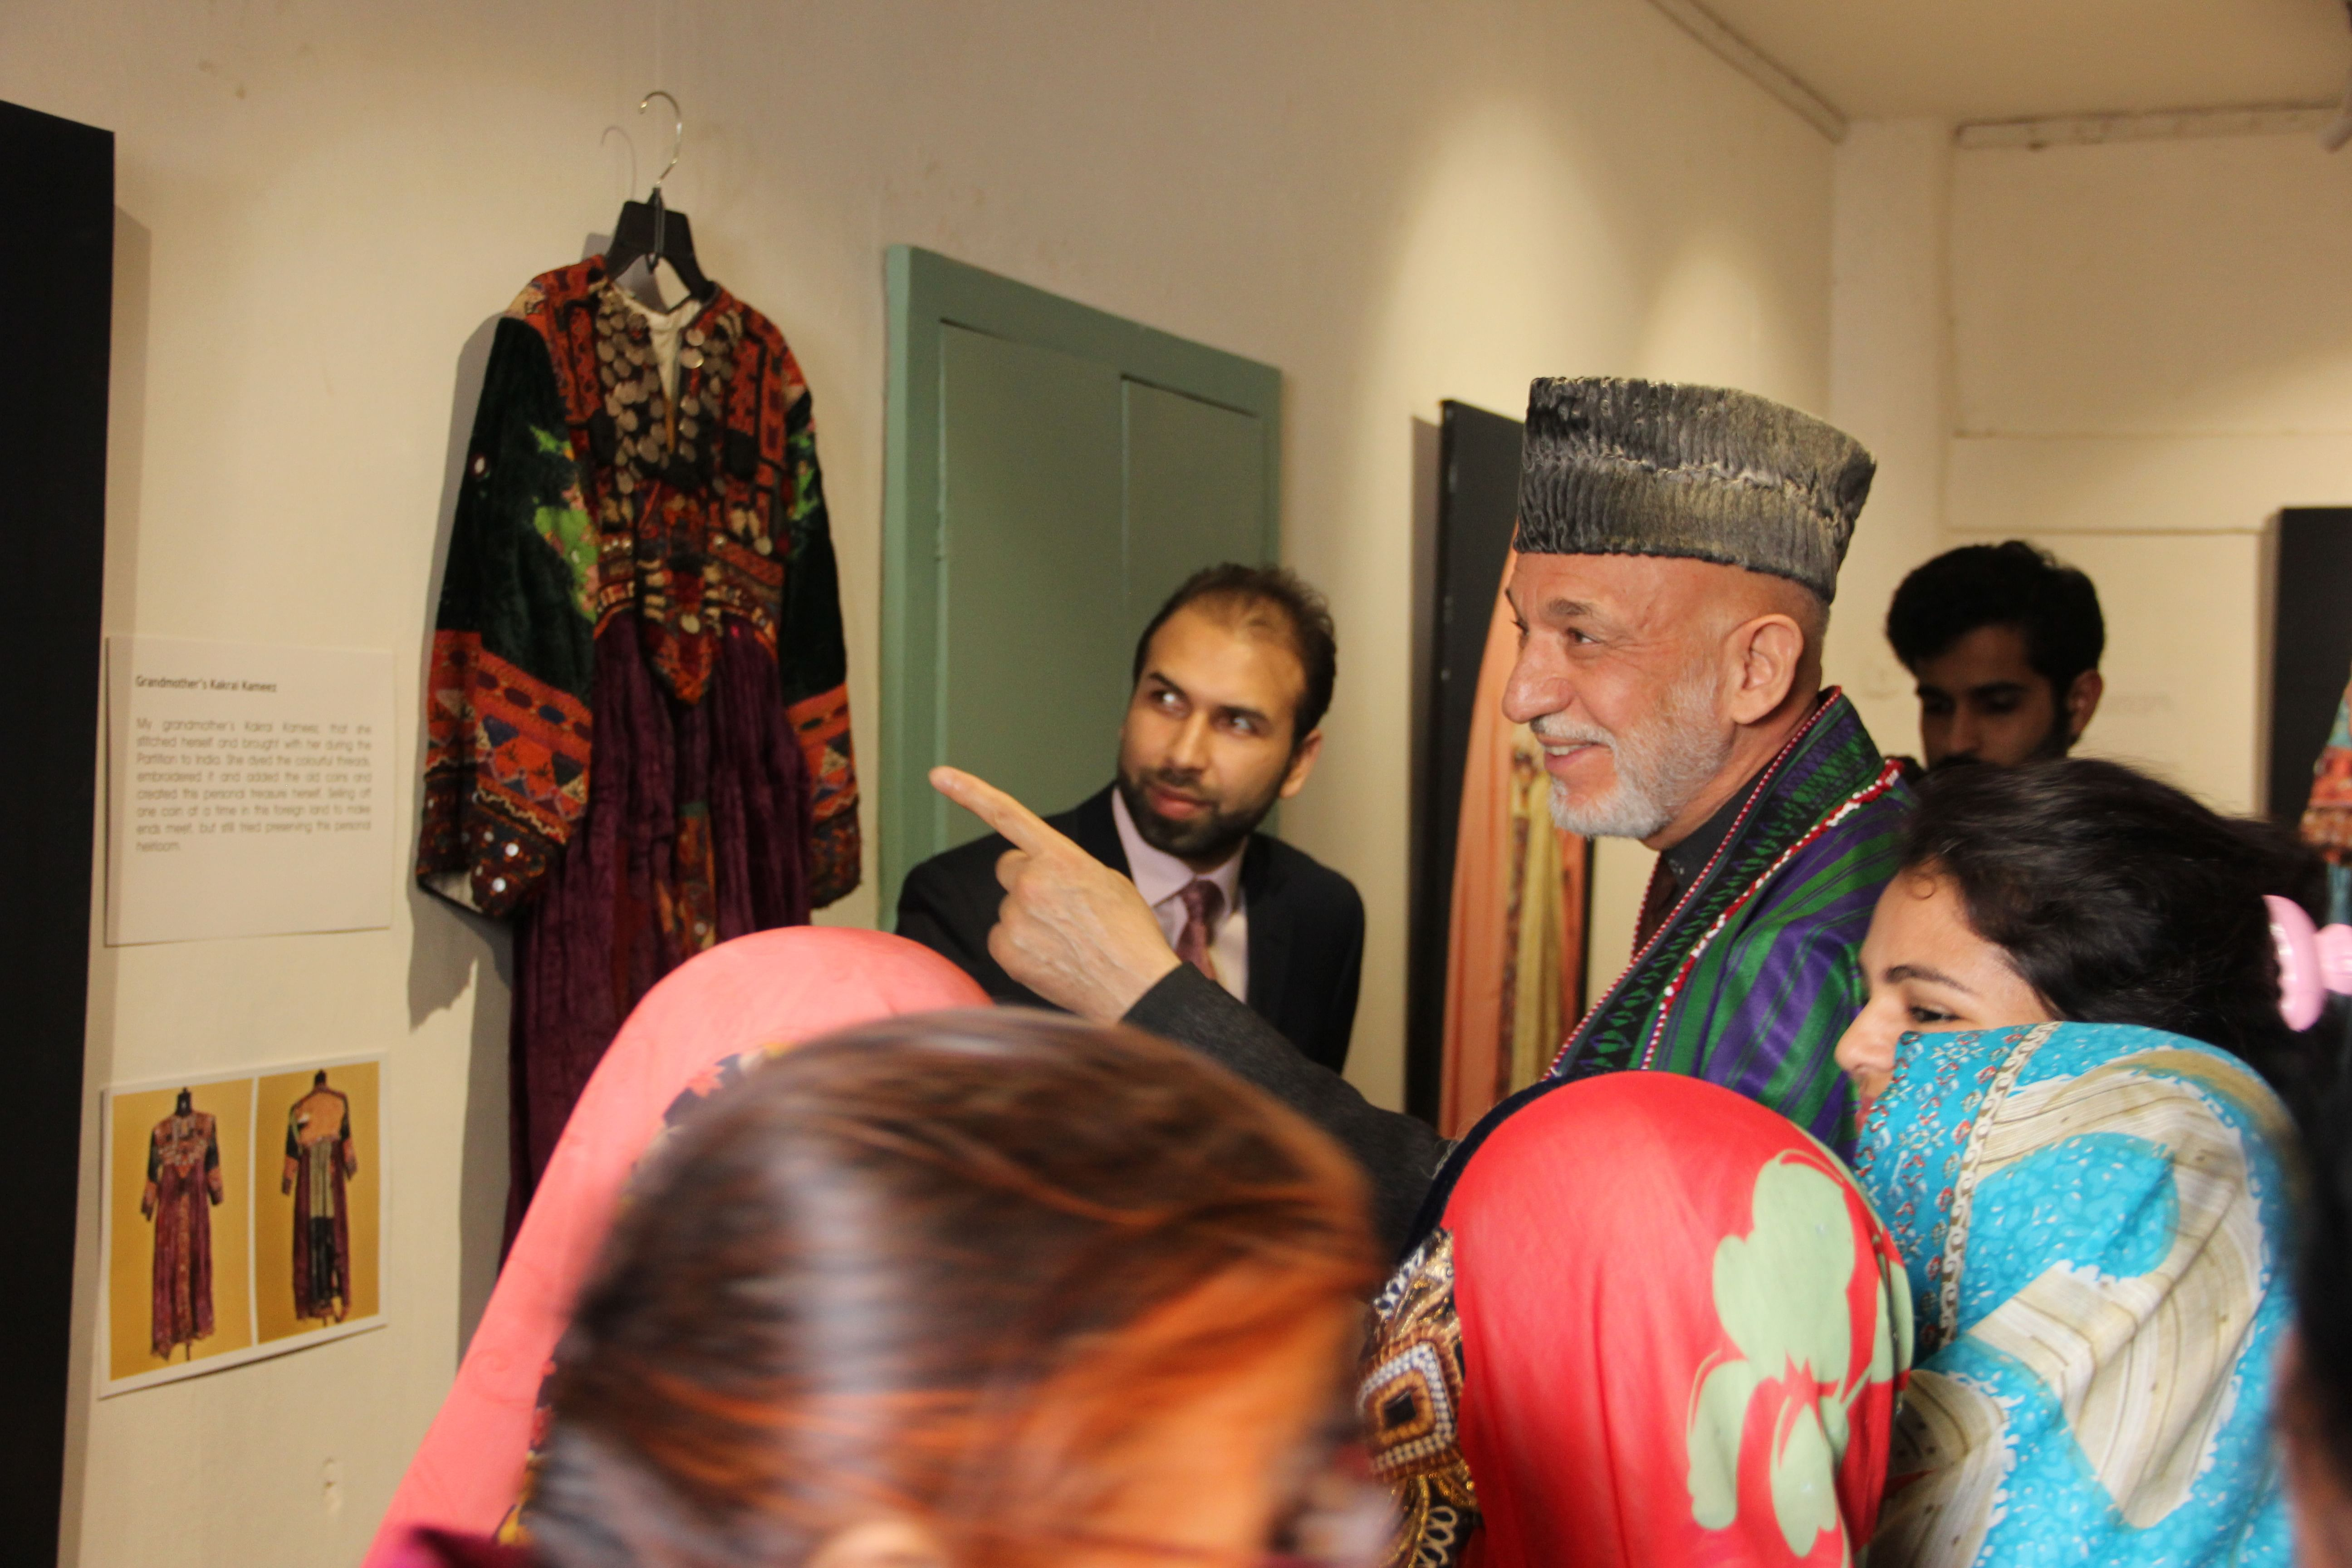 Former President of Afghanistan Hamid Karzai at the inauguration of Sheenkhalai Art Project in Jaipur in January this year.